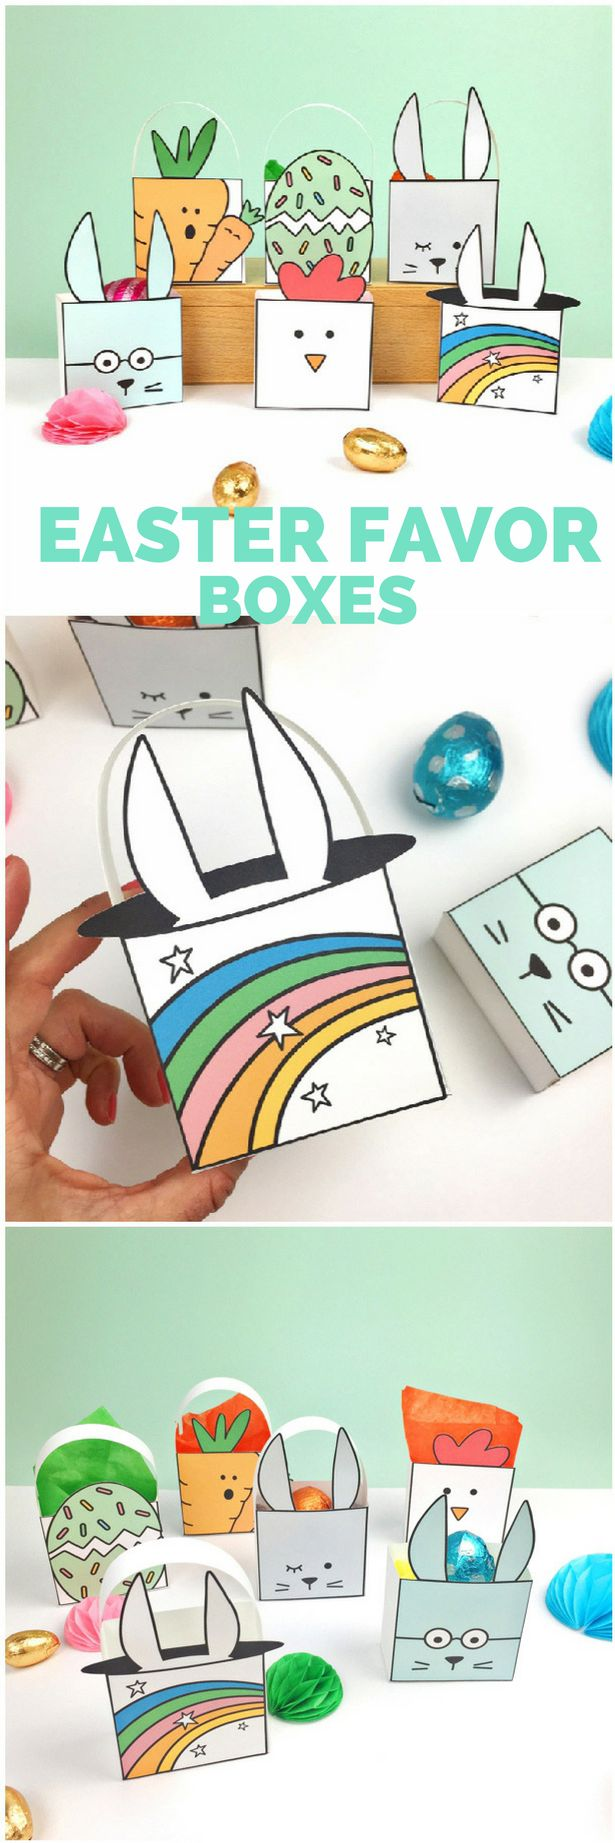 97 best Easeter Crafts And Activities images on Pinterest   Easter ...